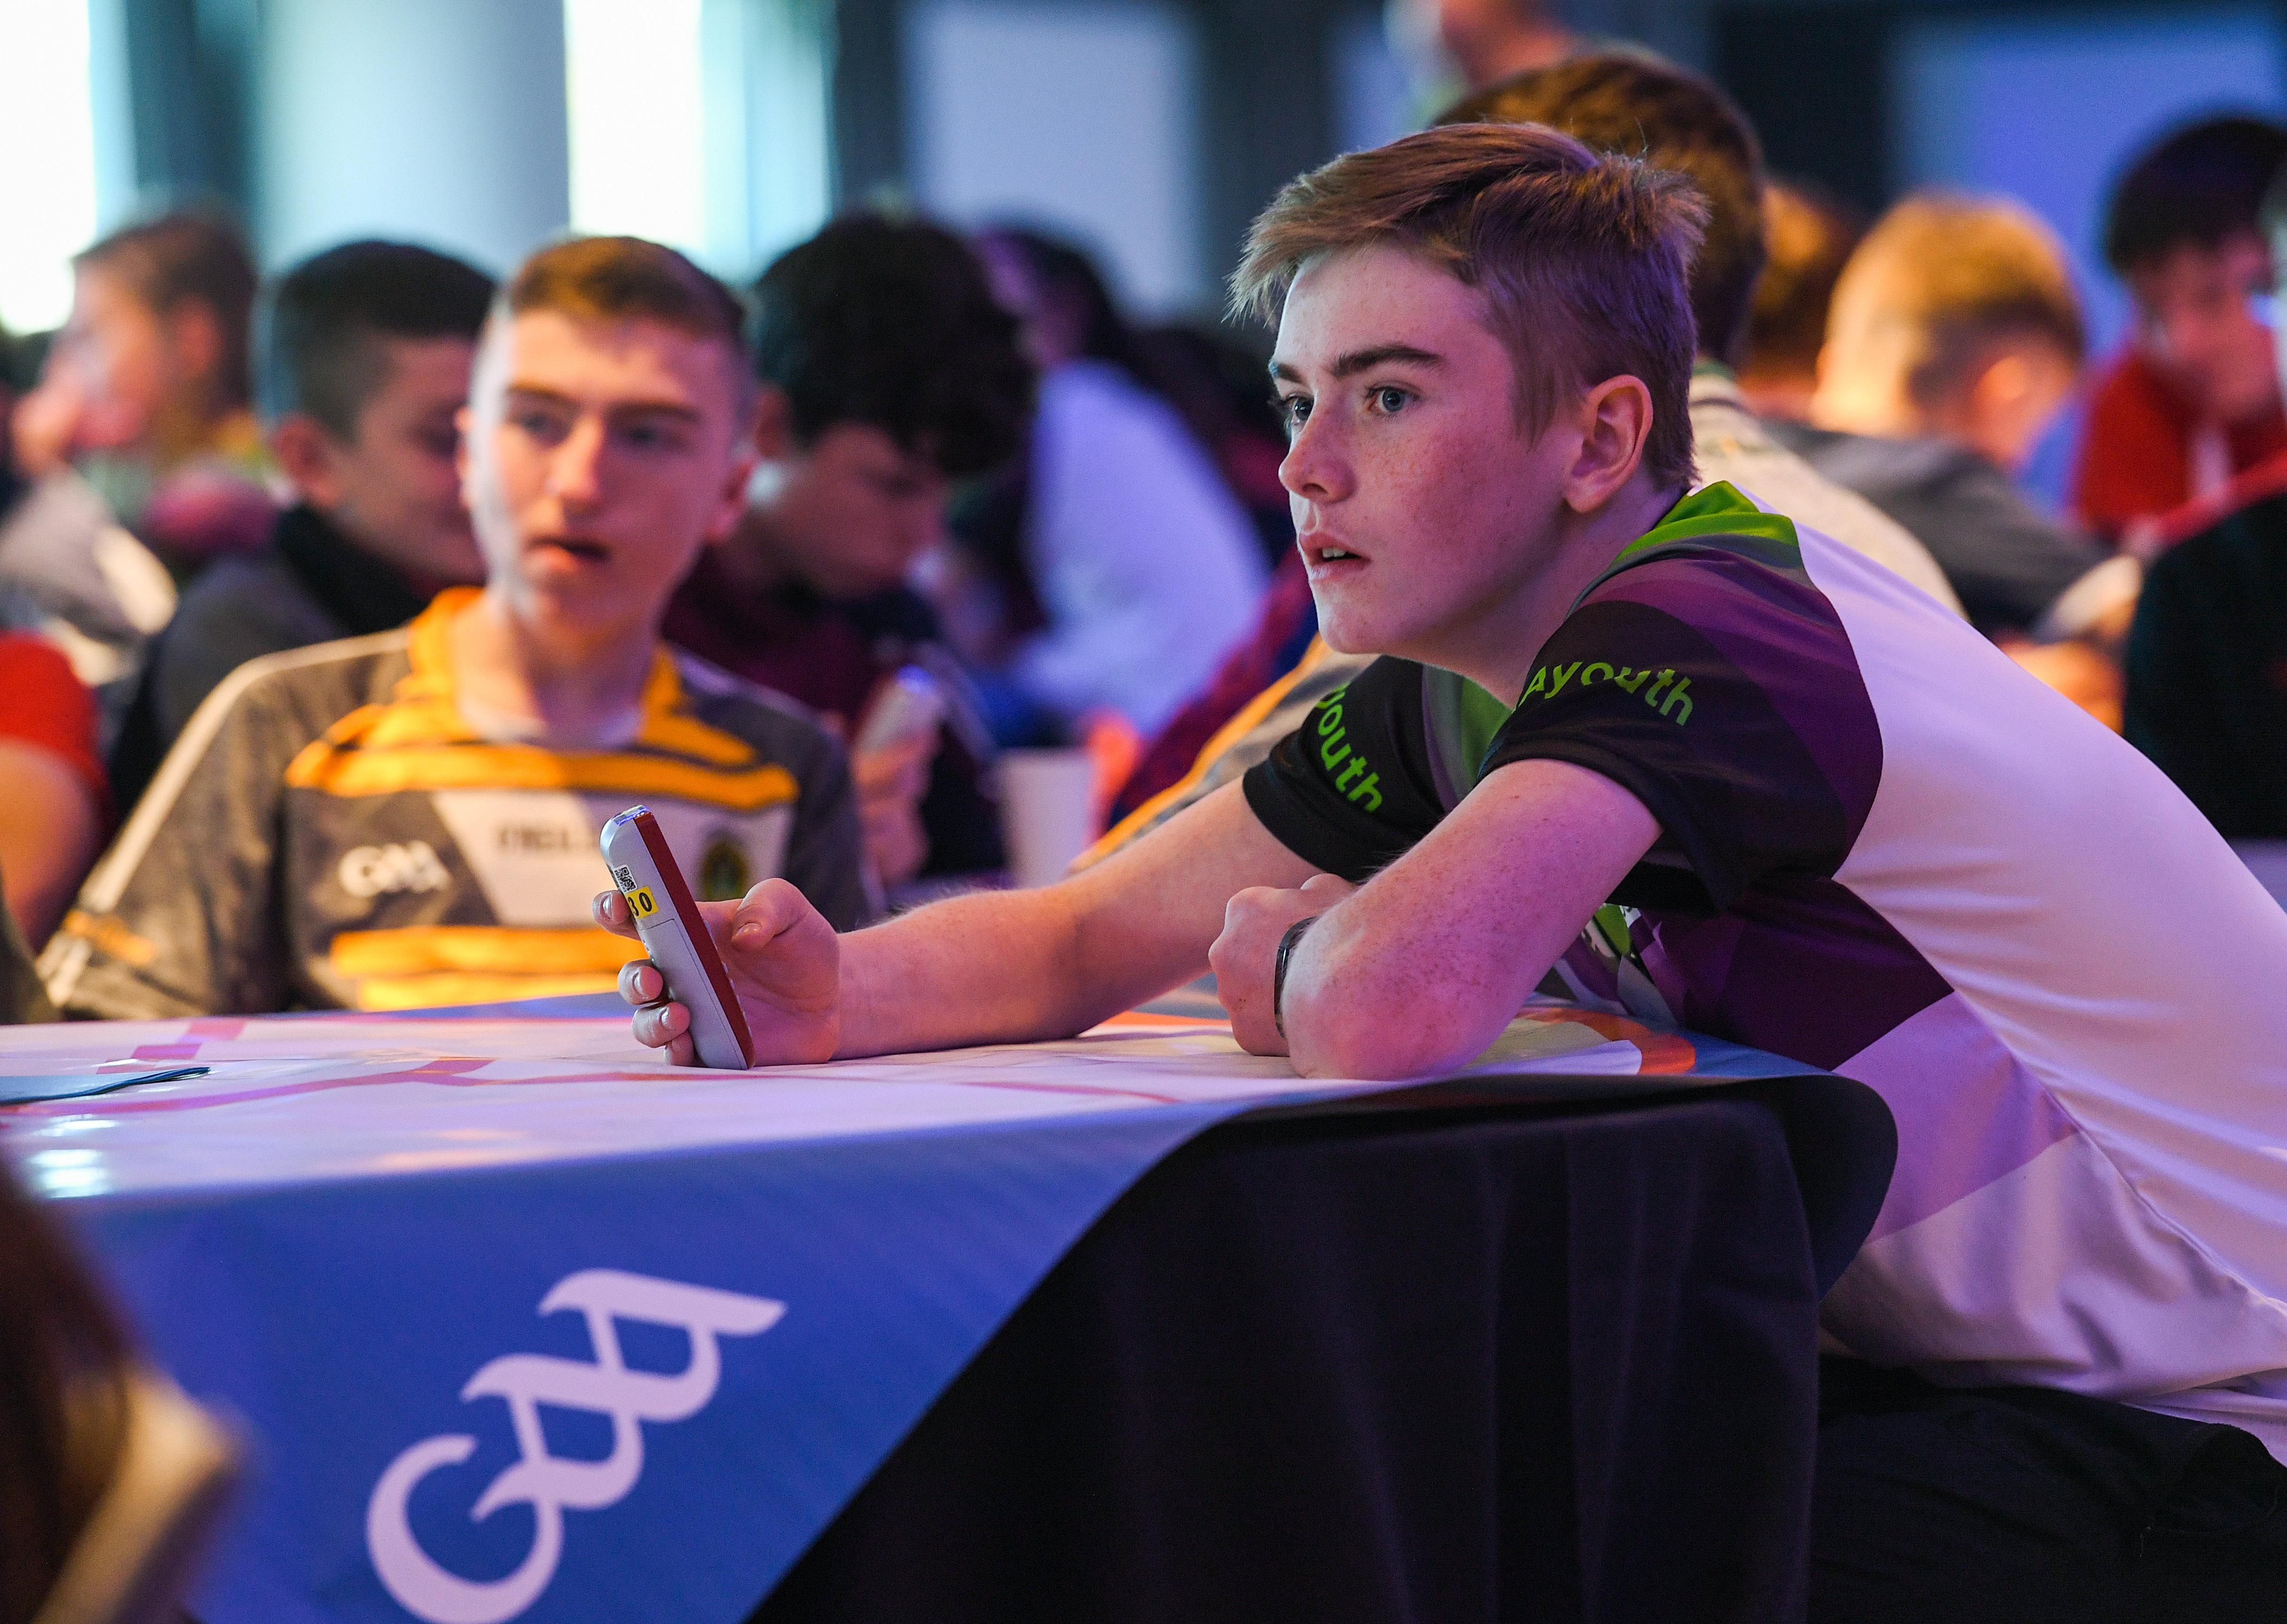 Youth Forum to take place in Connacht GAA Centre